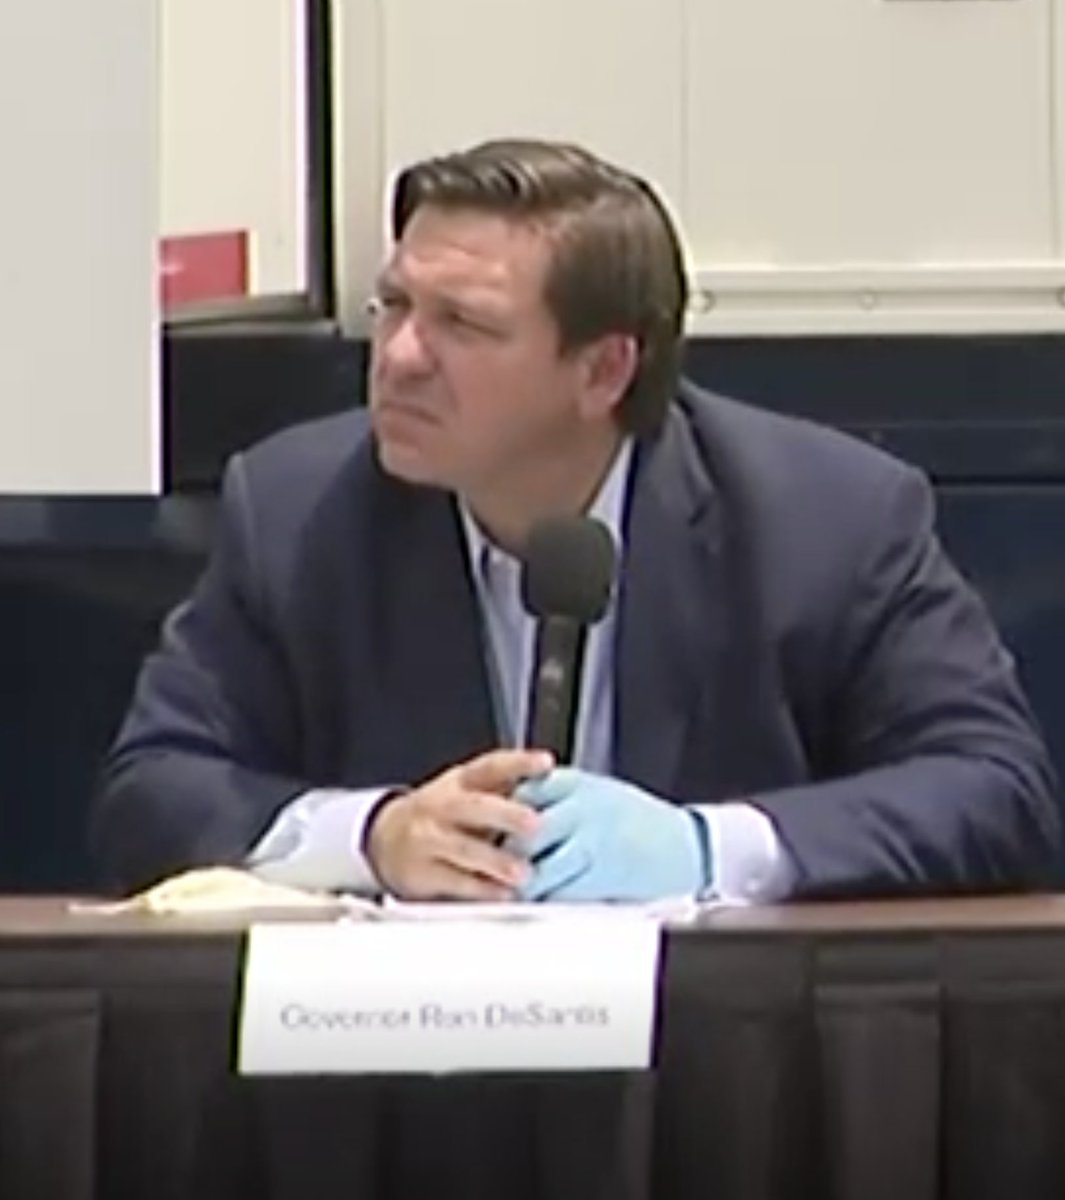 How not to use gloves by @GovRonDeSantis.